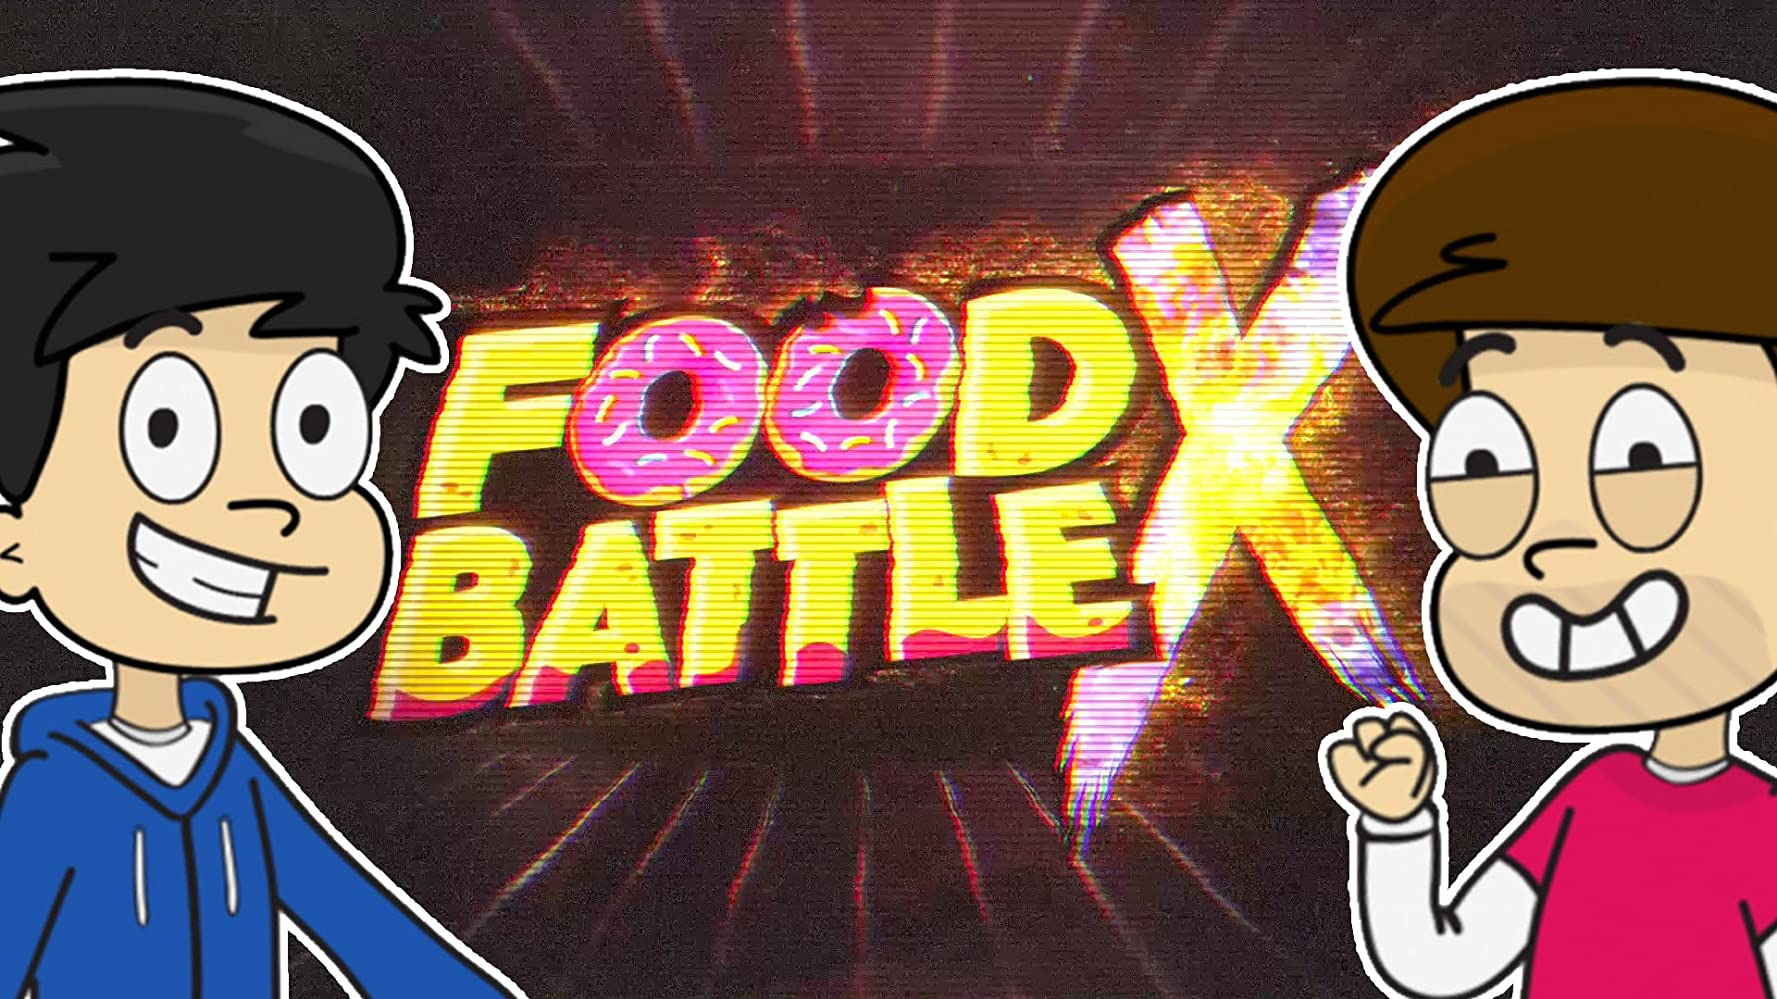 Food Battle X 2015